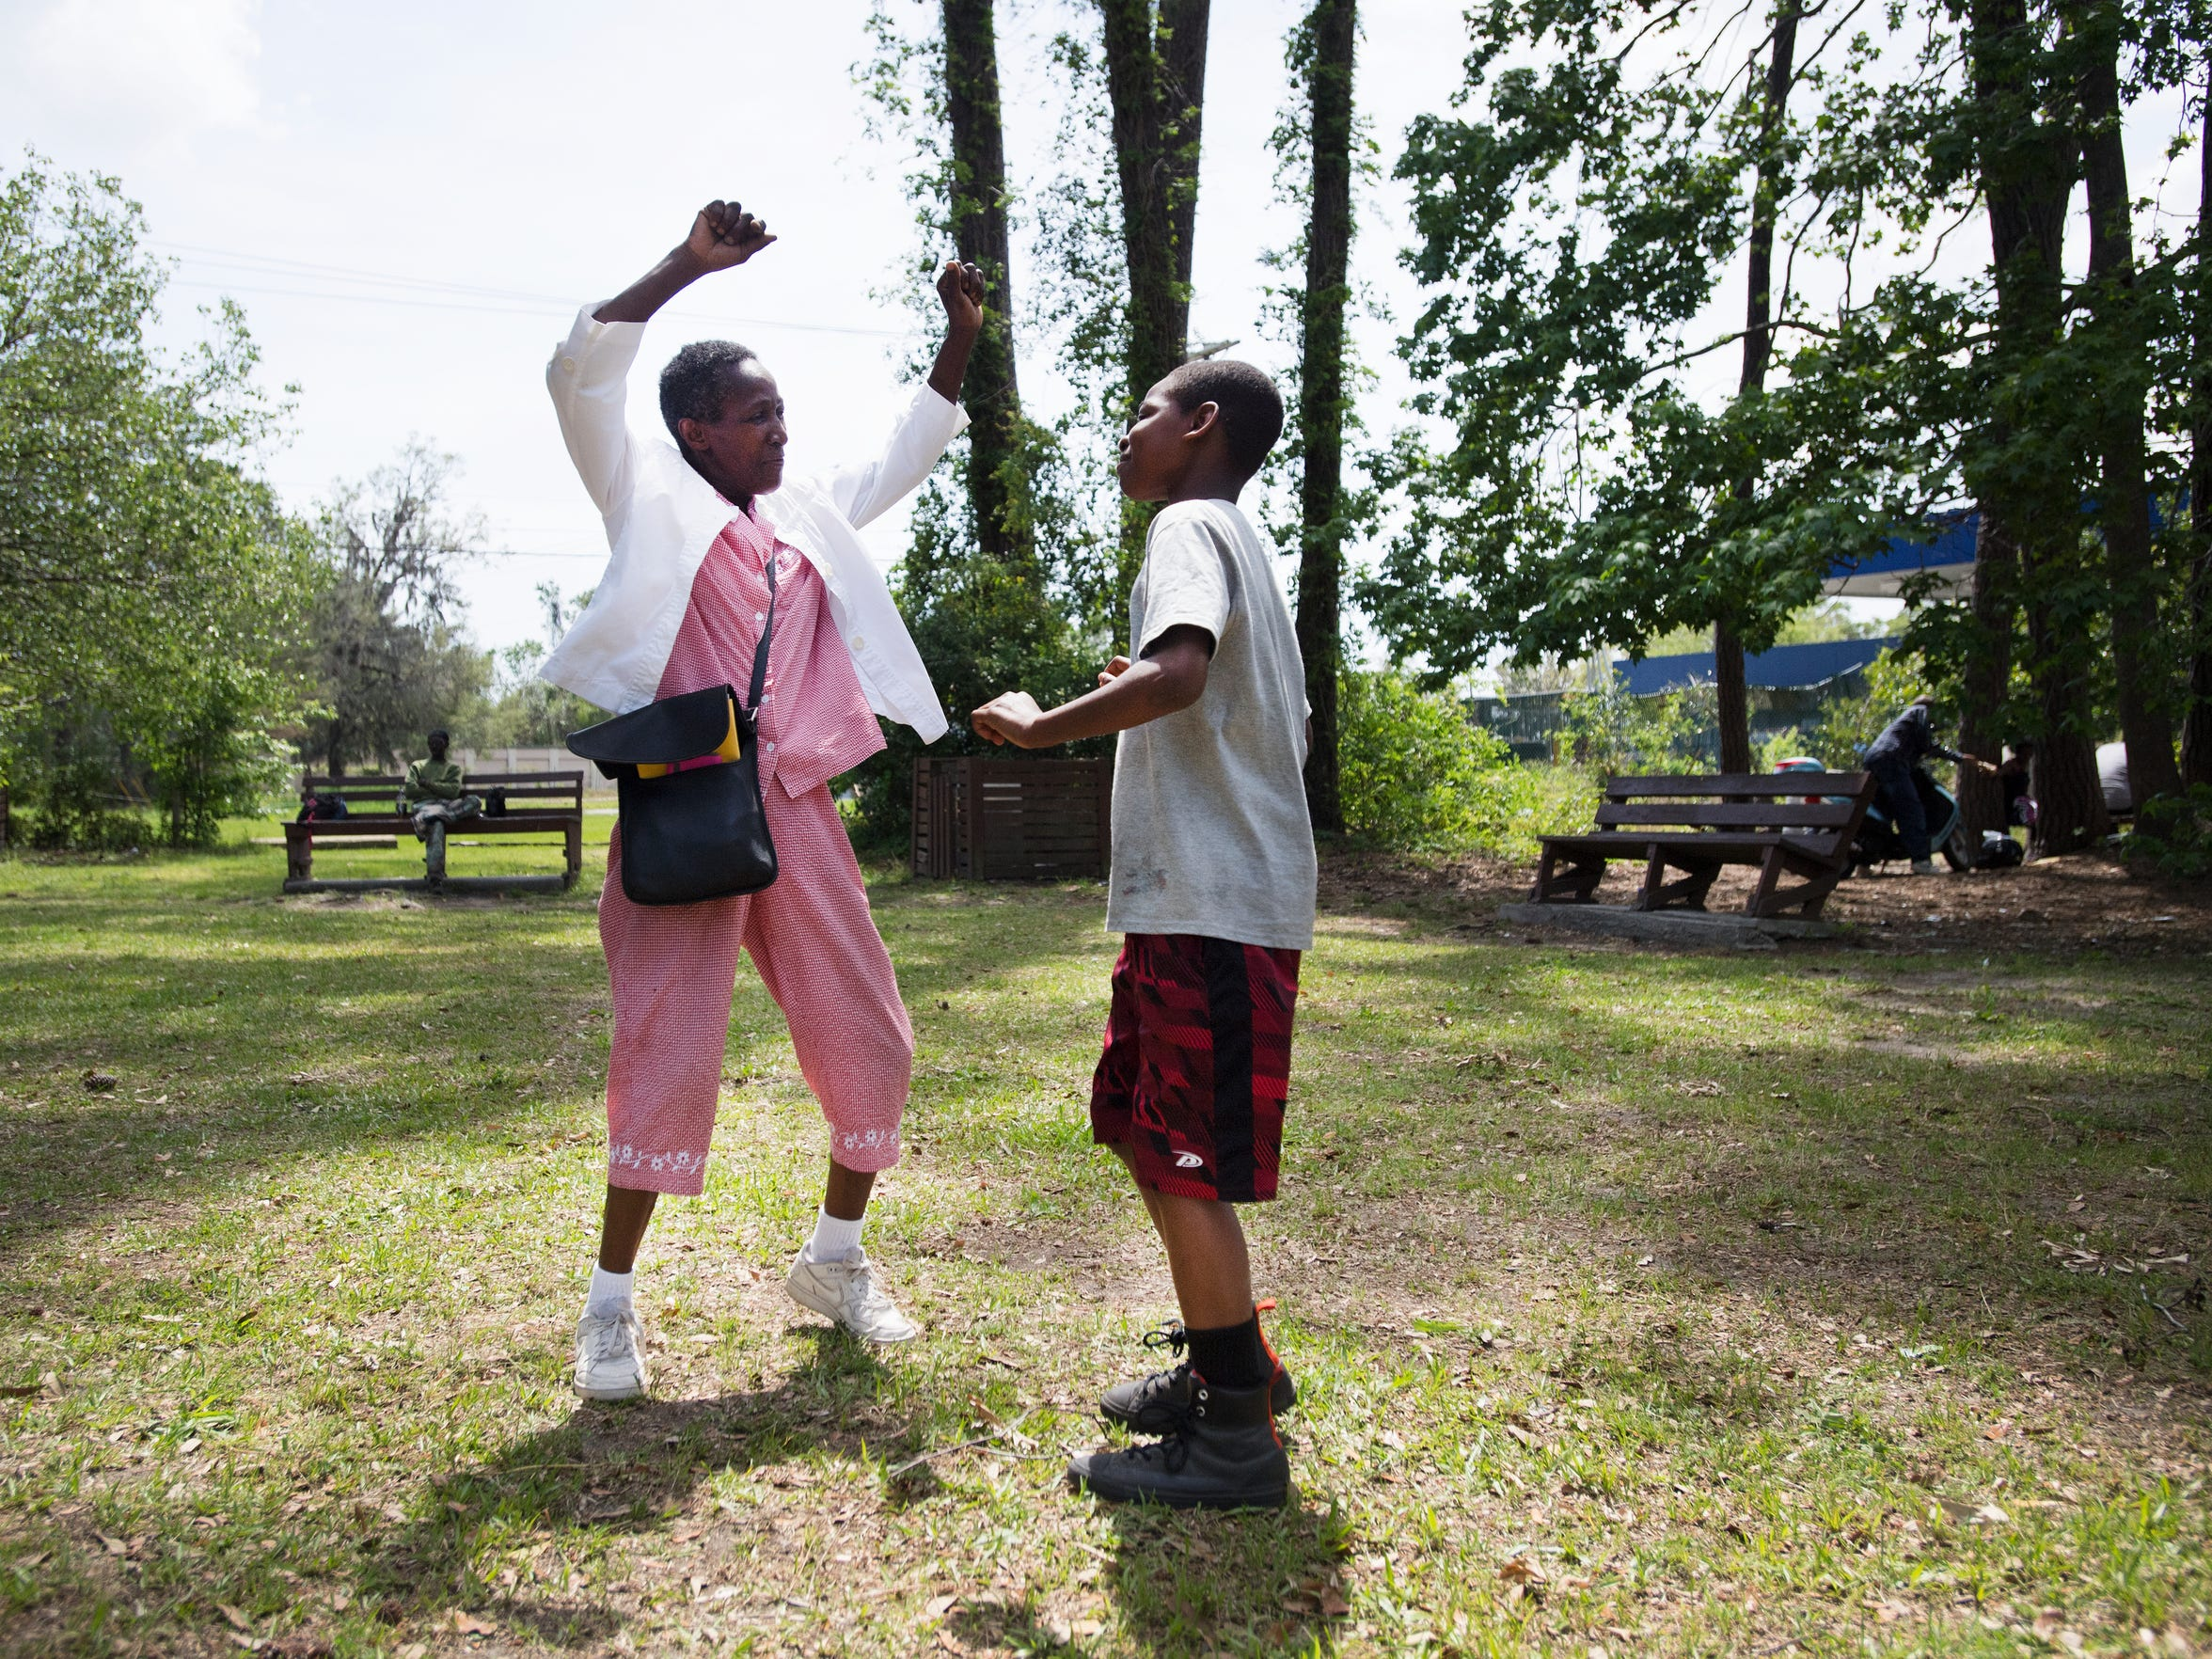 Peatsy Smalls, 63, teaches Jeden Pope, 10, how to dance at an outdoor market on St. Helena Island on Saturday, April 15, 2017.